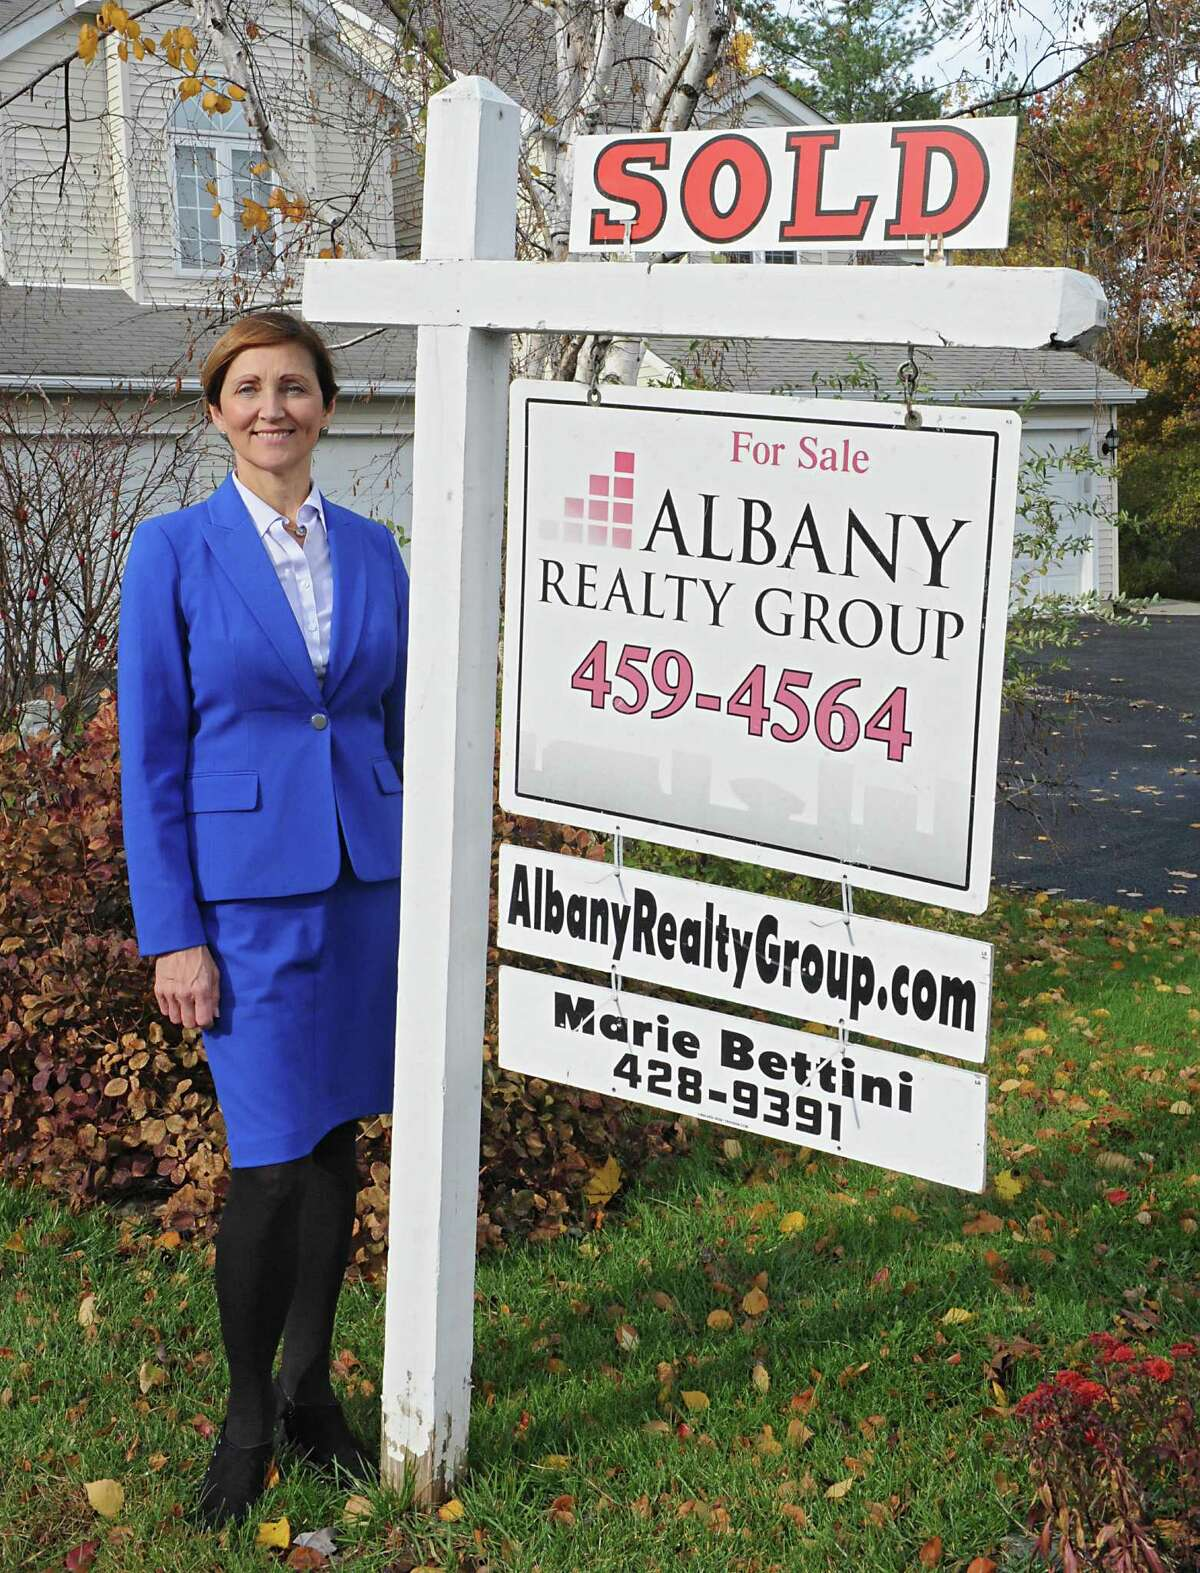 Marie Bettini stands next to her real estate sign at 1082 Sterling Ridge Dr. on Thursday, Oct. 29, 2015 in Rensselaer, N.Y. (Lori Van Buren/Times Union) ORG XMIT: MER2015102916042525